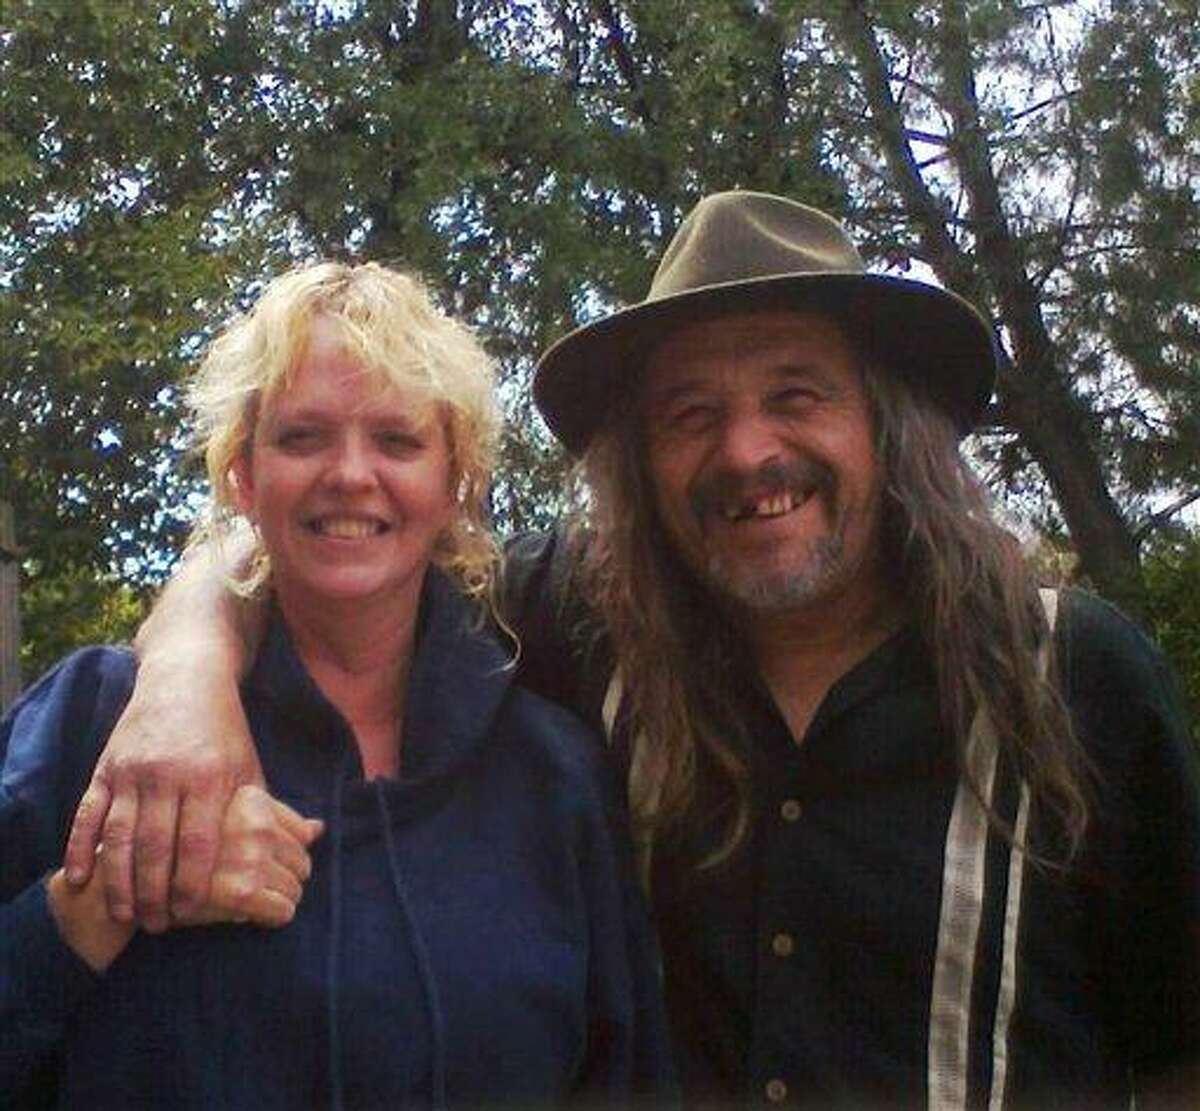 This undated photo provided by Karanda Williams shows Daniel and Belinda Conne. The couple and their adult son were found injured but alive Saturday after they got lost while picking mushrooms and survived six days deep in the Oregon coastal forest, taking shelter part of the time in a hollowed-out tree. Belinda and Daniel Conne, both 47, and their 25-year-old son, Michael, were spotted by a helicopter pilot and later flown to a hospital. Curry County Sheriff John Bishop said Daniel Conne suffered a back injury, Belinda Conne had hypothermia, and their son Michael had a sprained foot. All three also were dehydrated and hungry. Associated Press